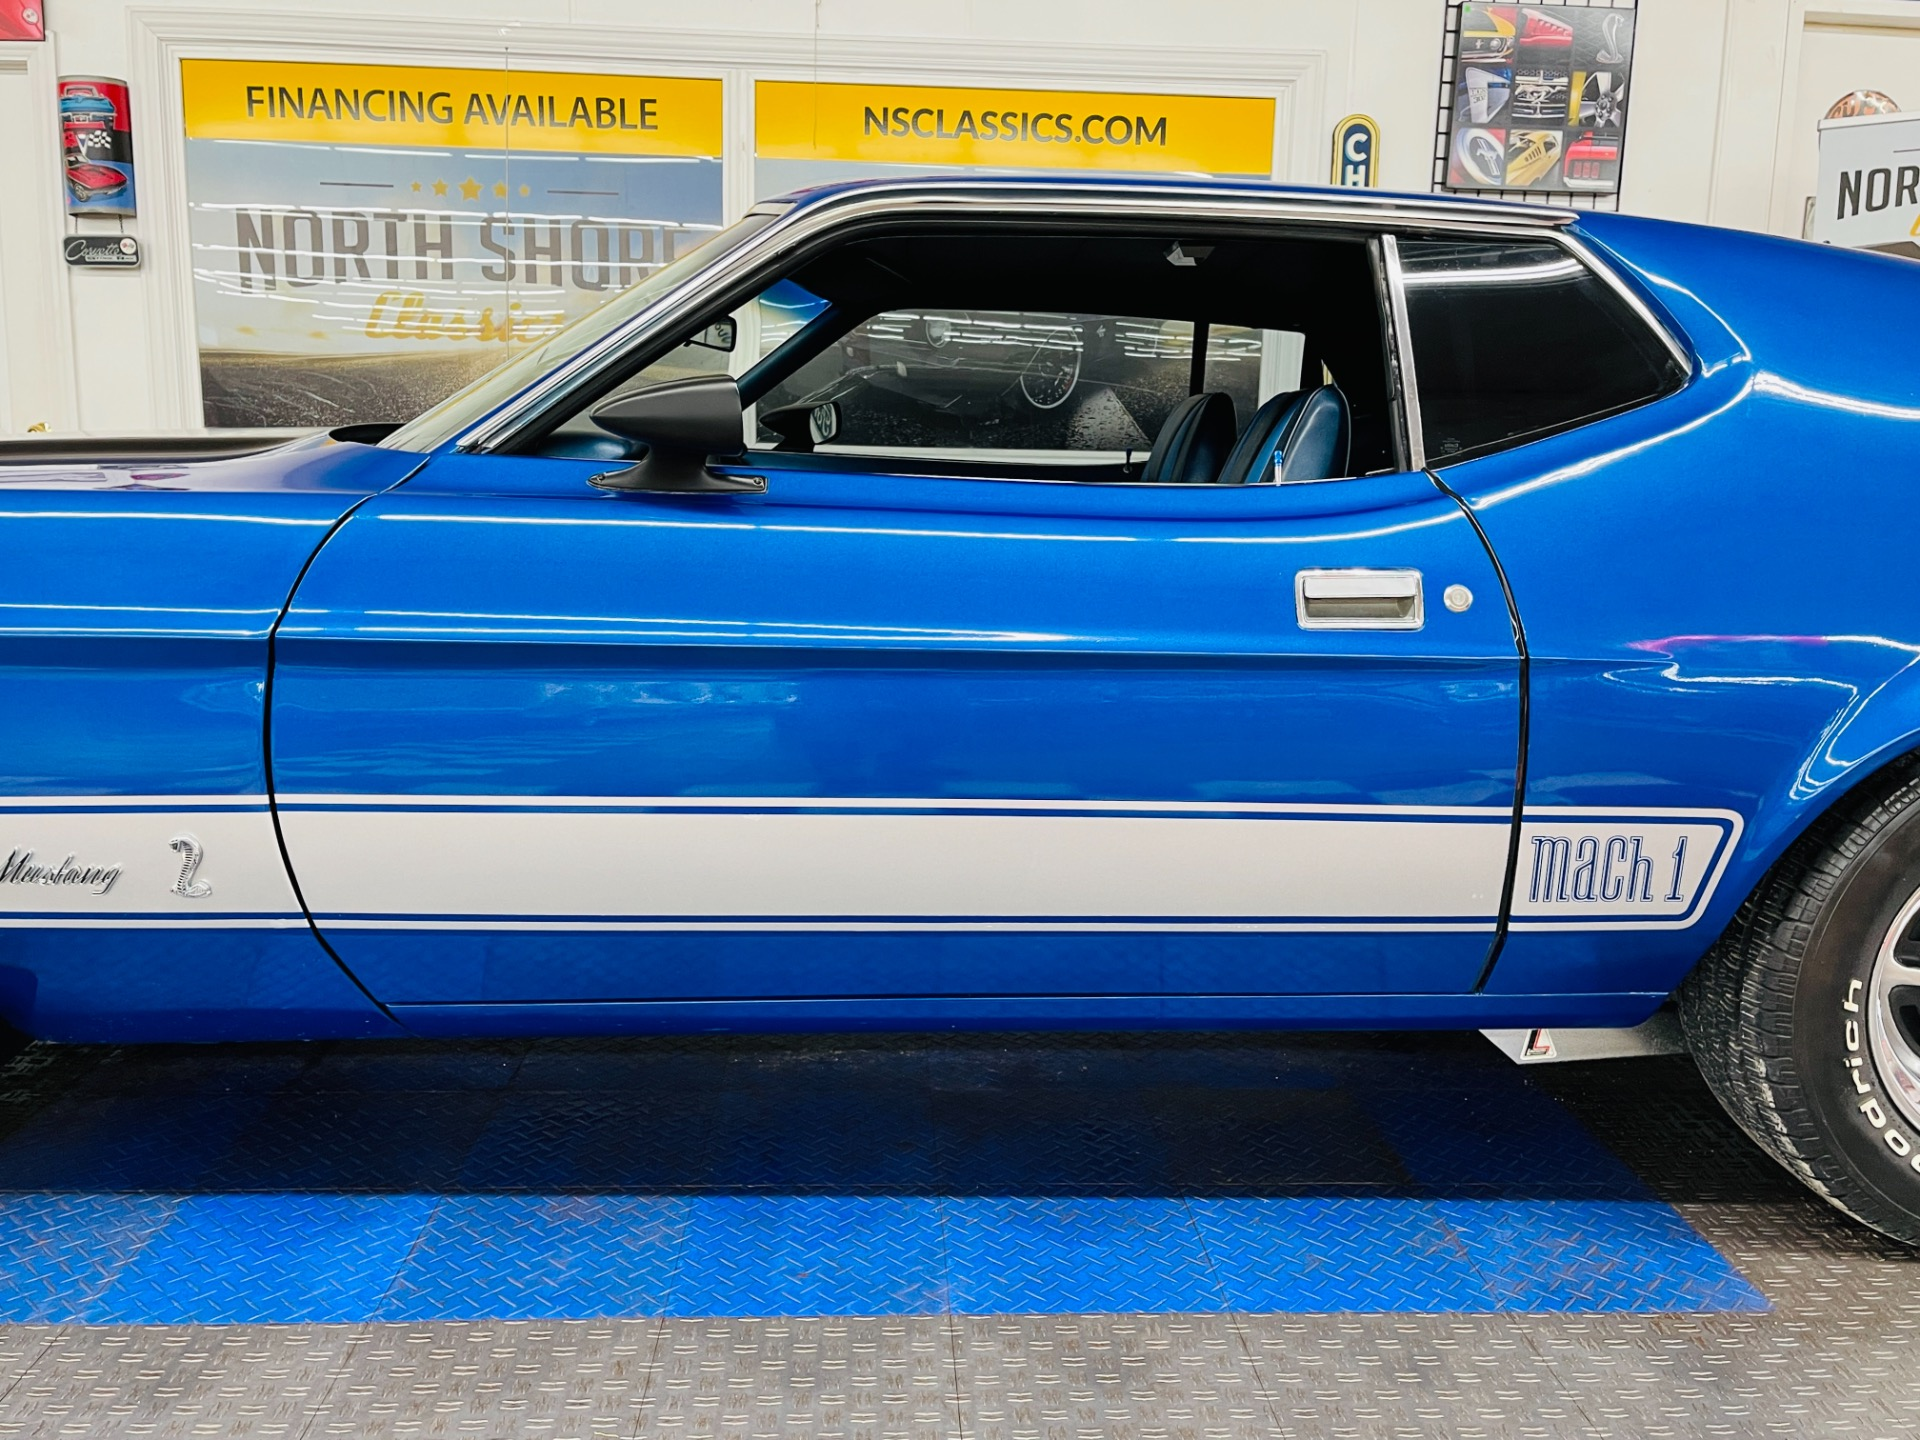 Used 1973 Ford Mustang - MACH 1 - 351 ENGINE - DRIVES GREAT - SEE VIDEO - | Mundelein, IL